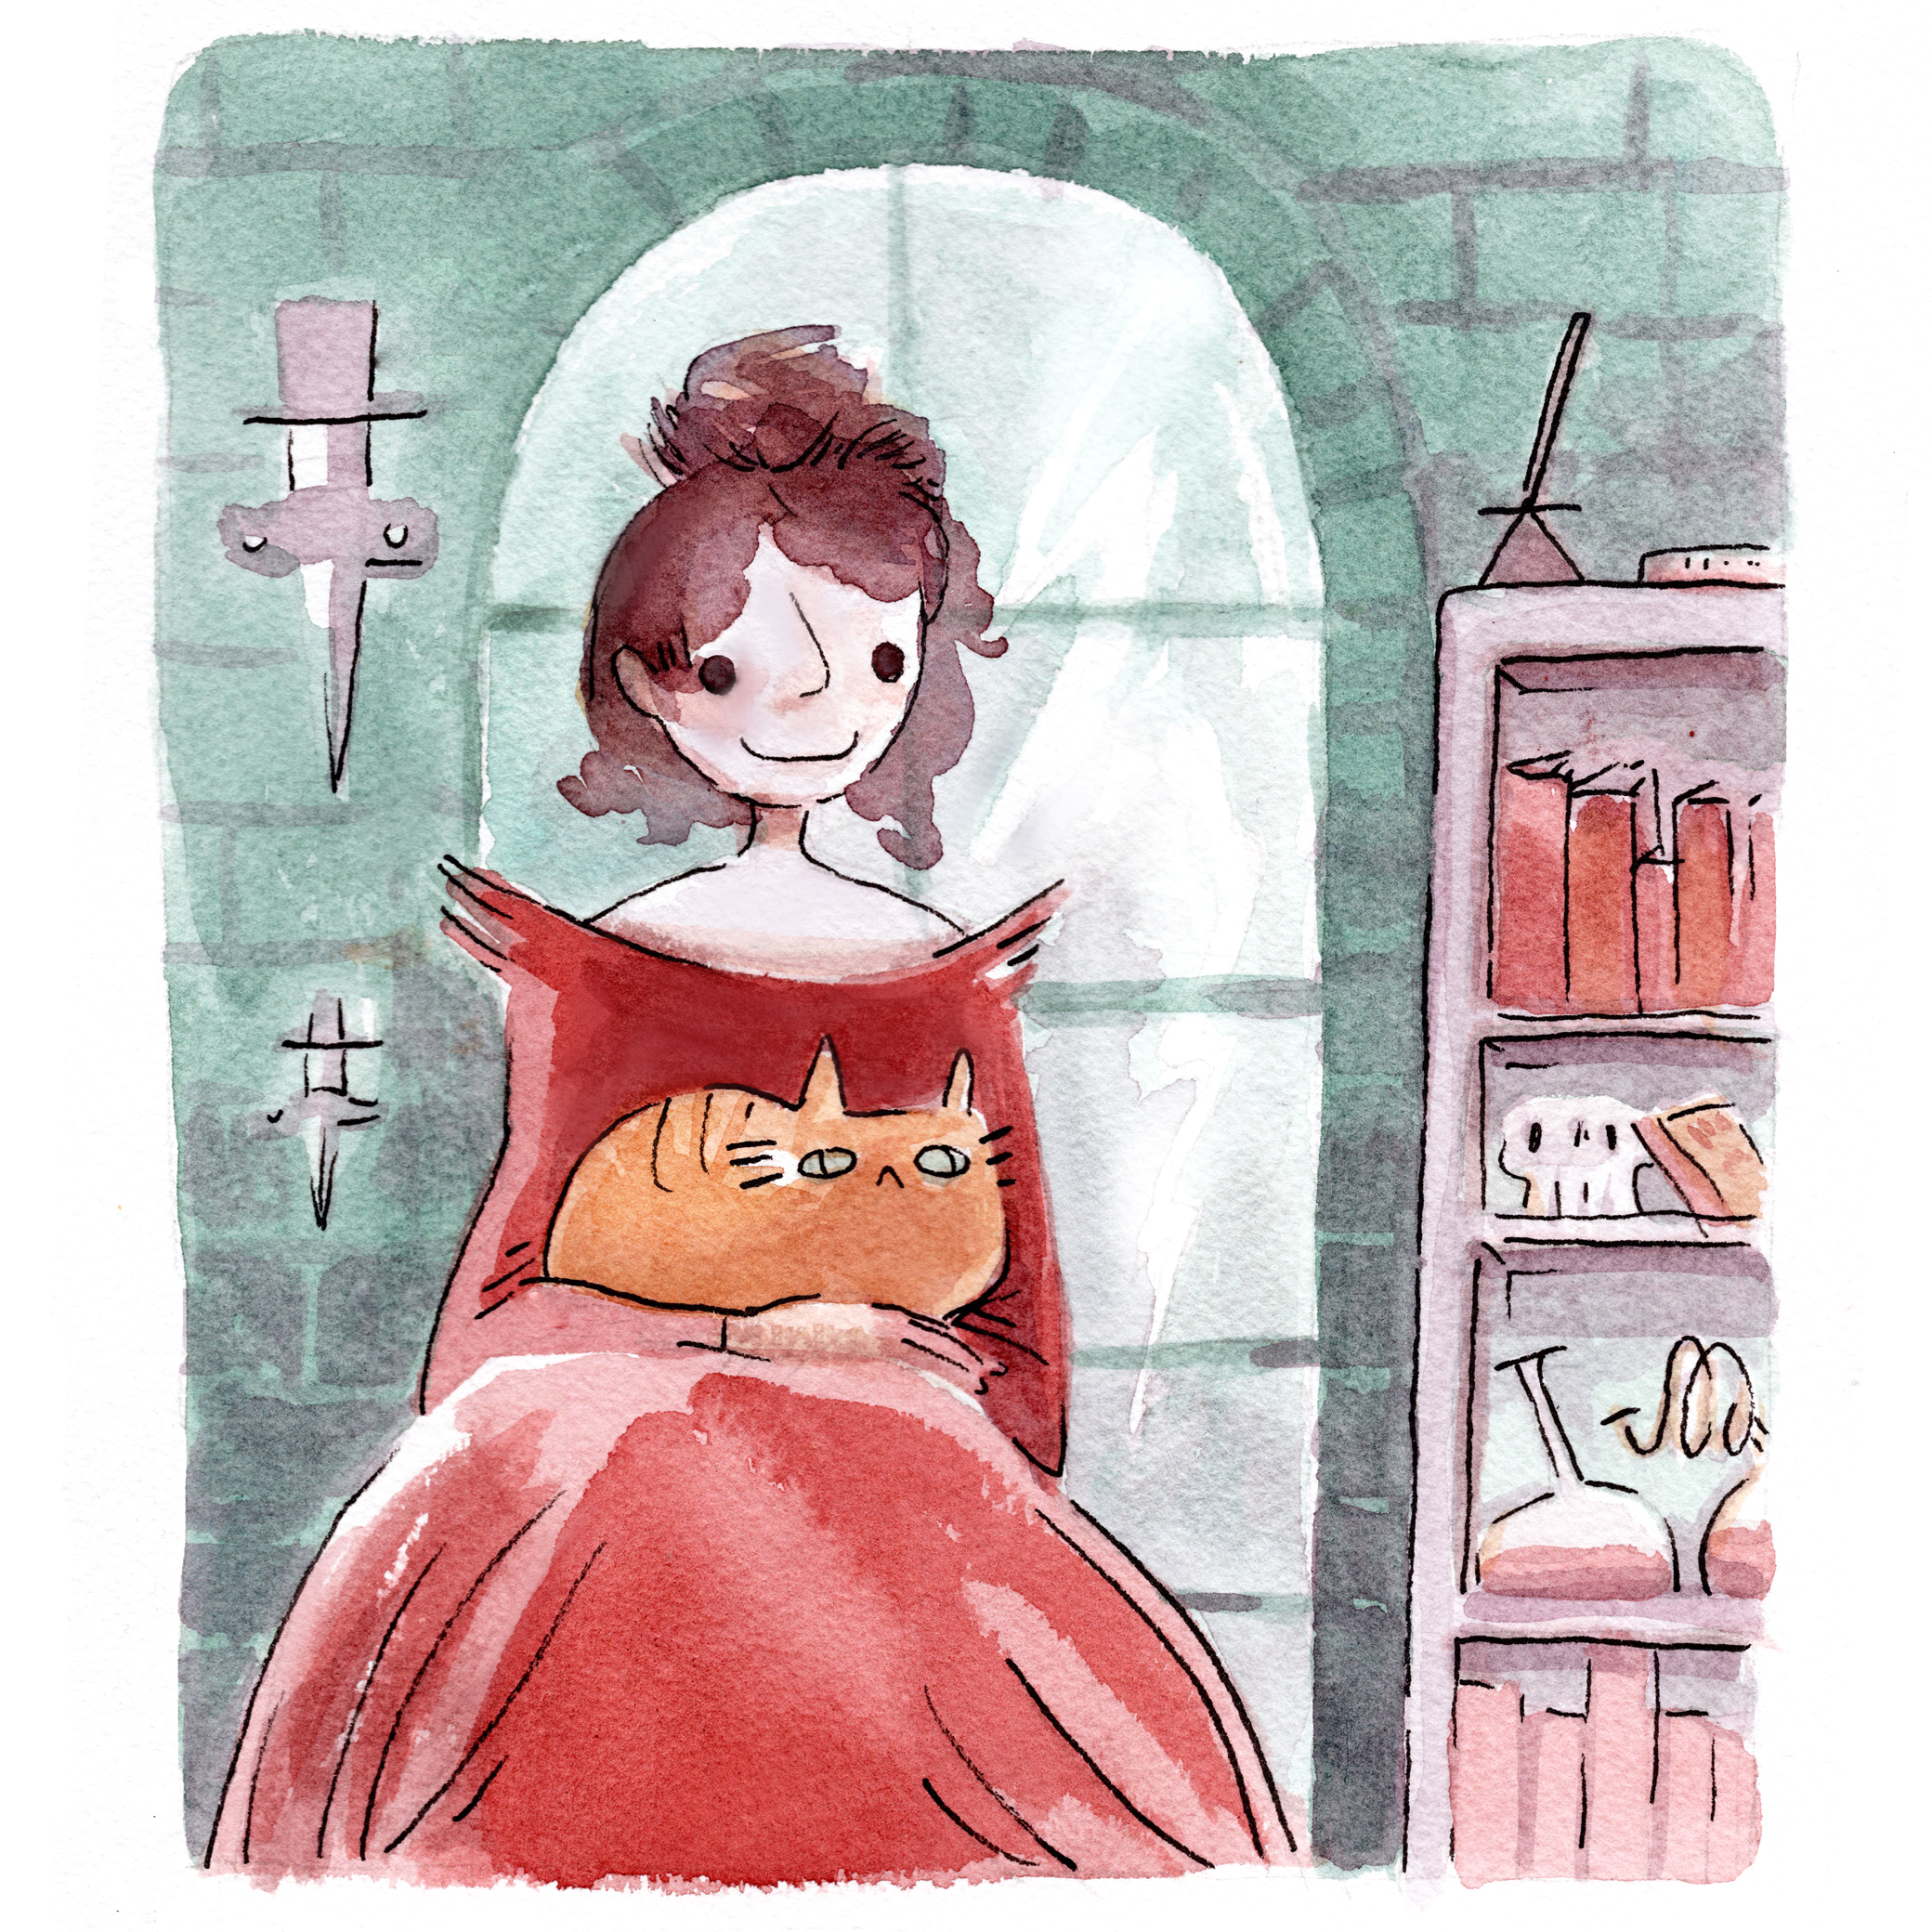 Watercolor of a woman in a spooky castle, wearing a striking red dress as she holds an orange cat.